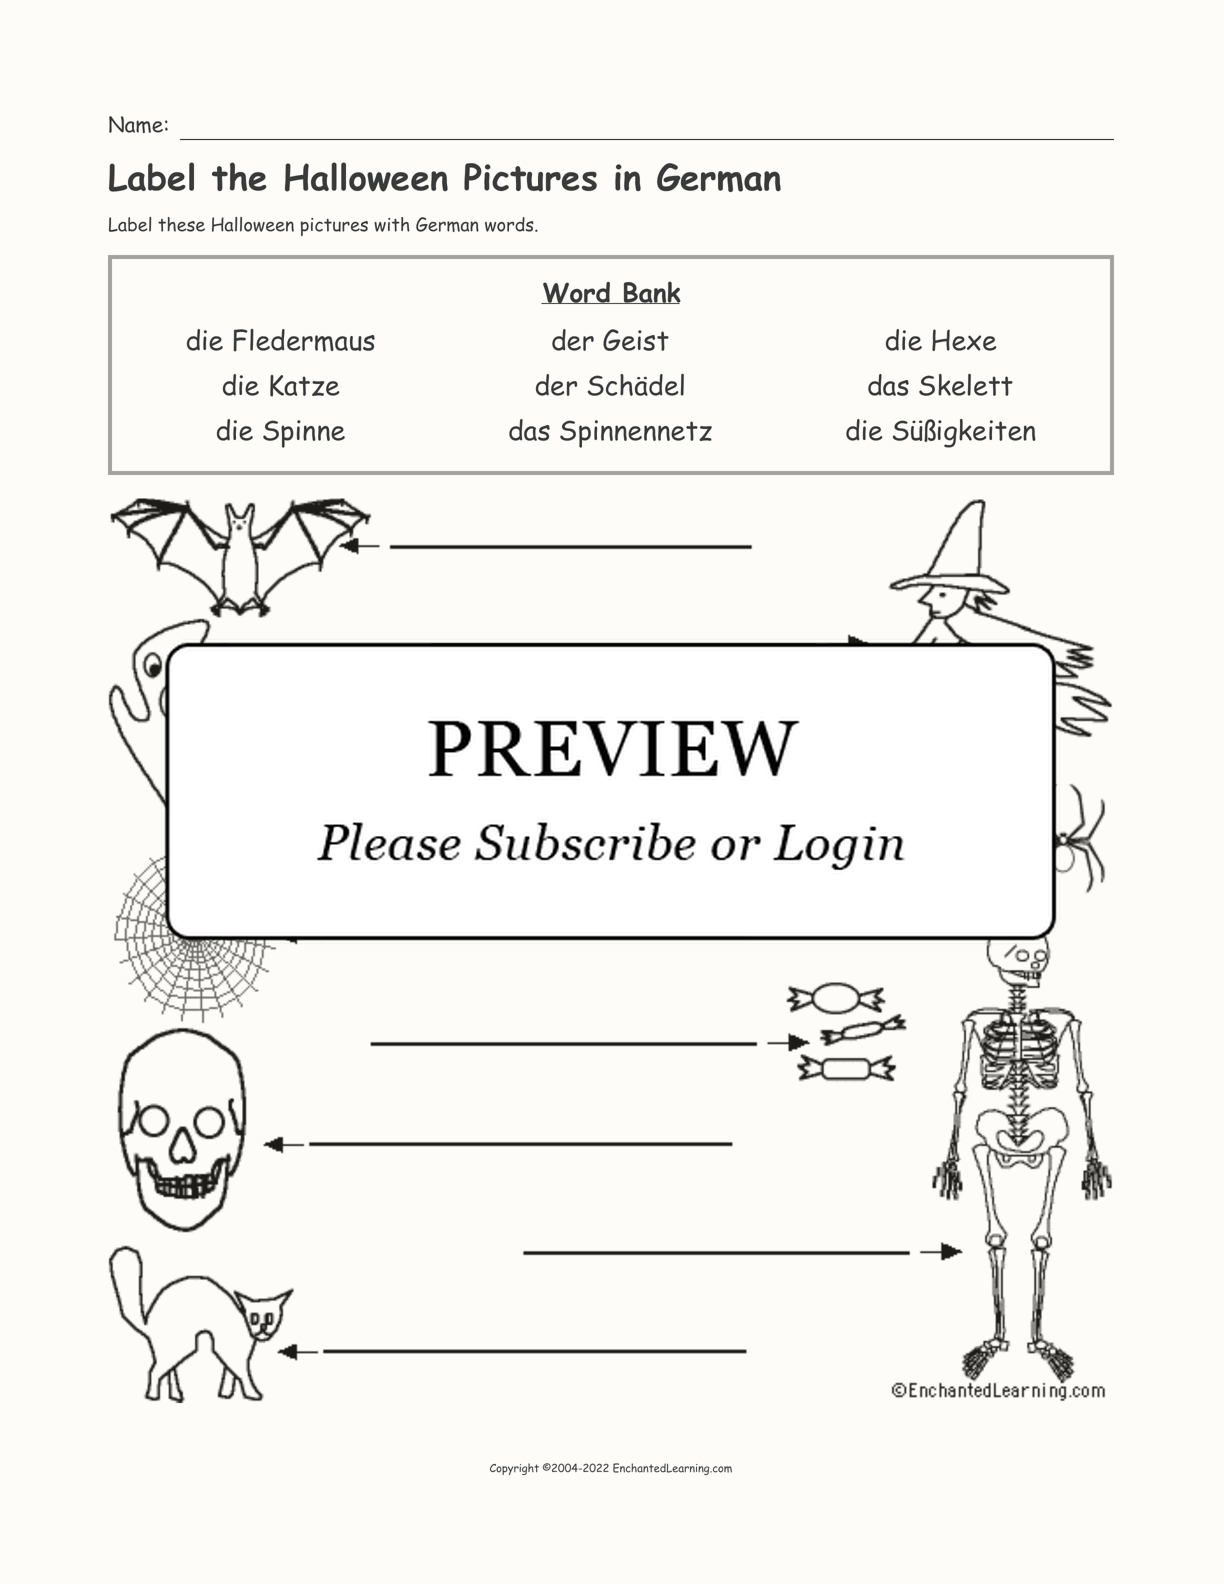 Label the Halloween Pictures in German interactive worksheet page 1